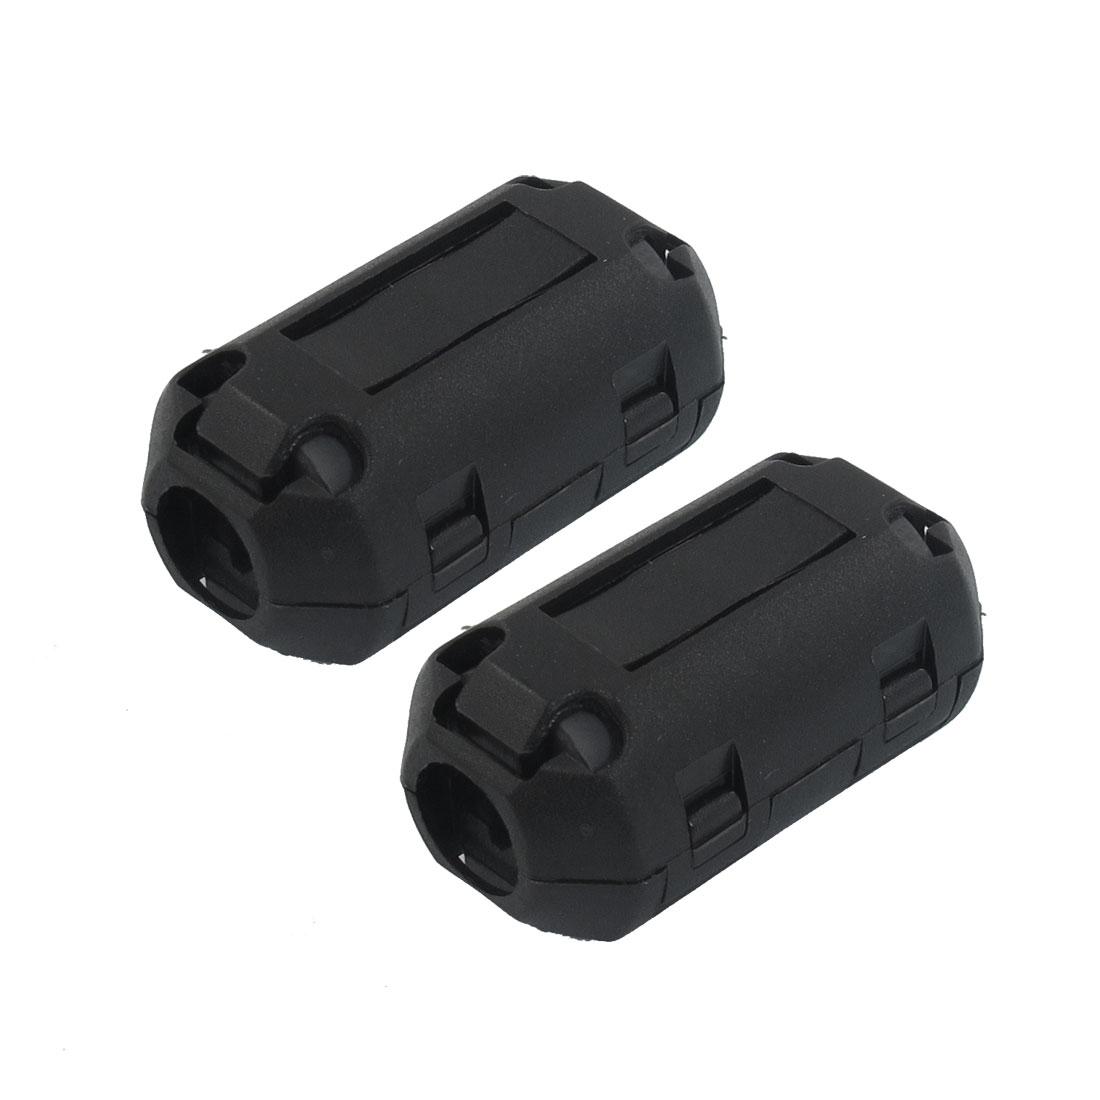 2 Pieces 2070B Black Plastic Magnet Ferrite Cable Clip 29mm Length